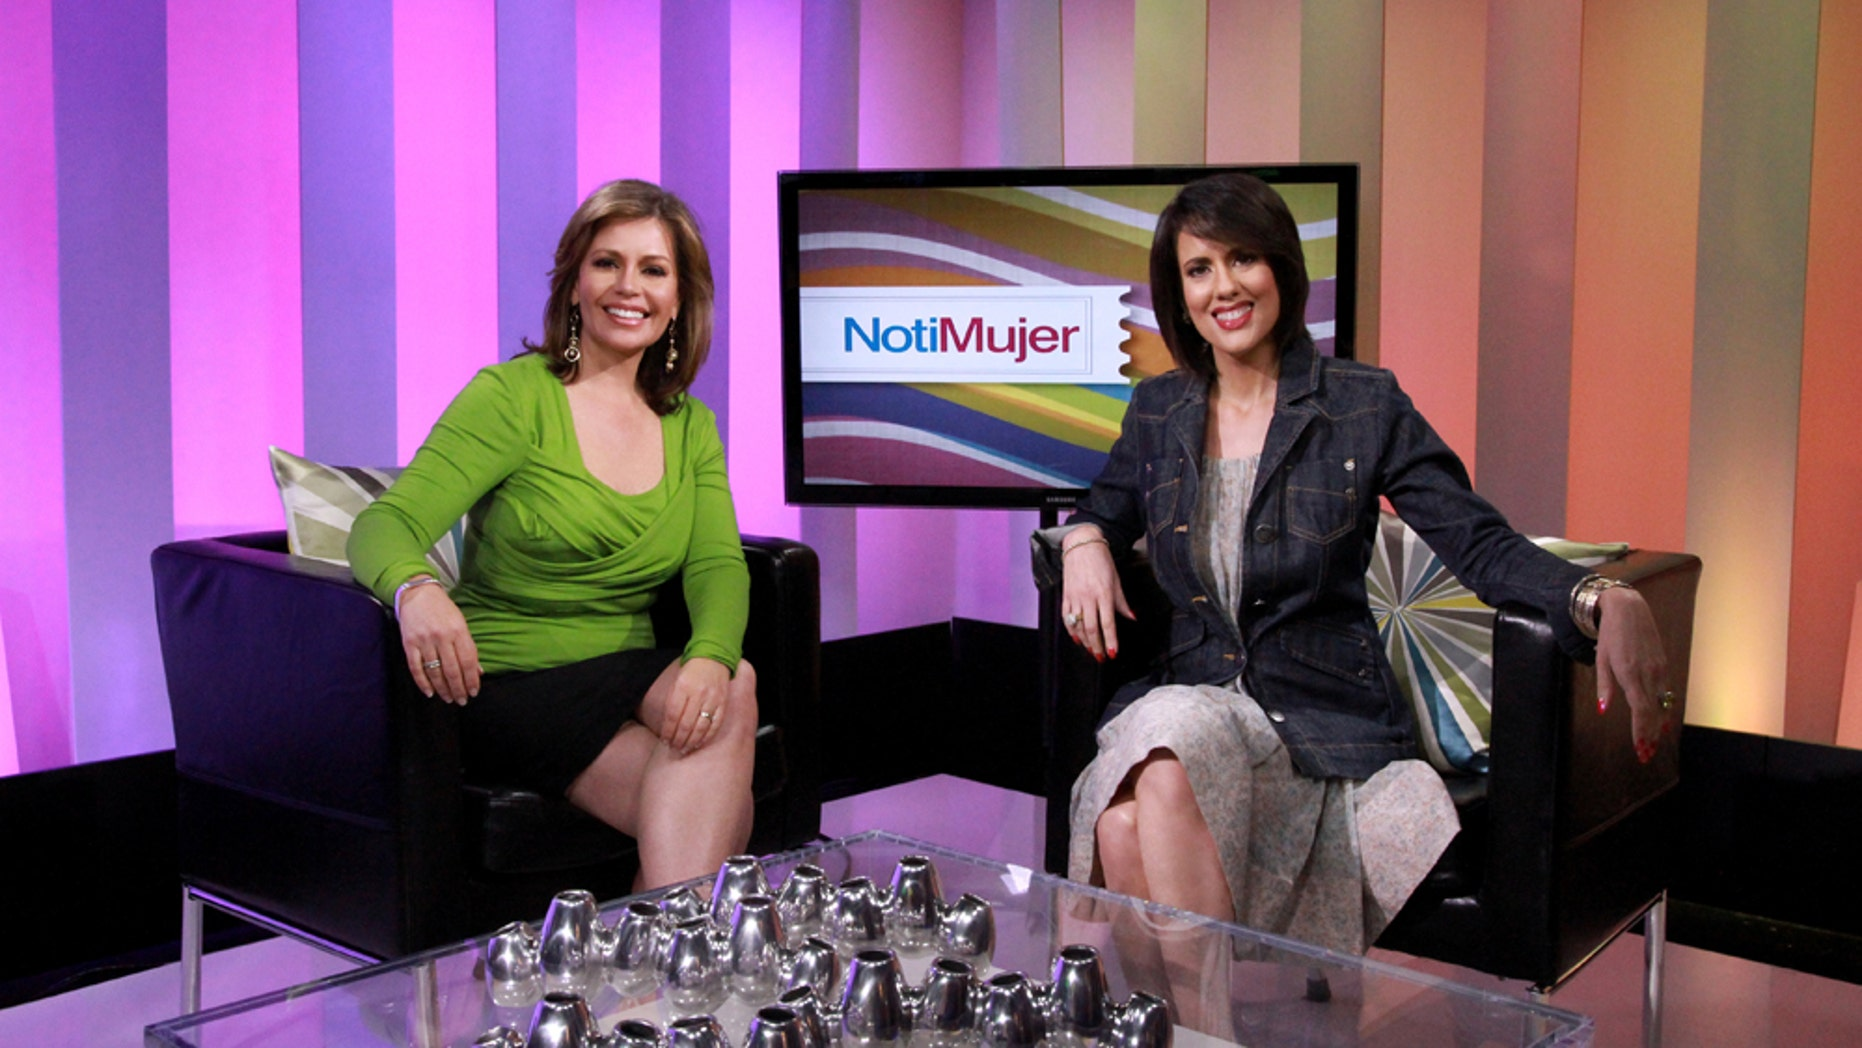 """Glenda Umaña and Mercedes Soler  are hosts of the """"NotiMujer """", which airsdaily on CNN en Español."""